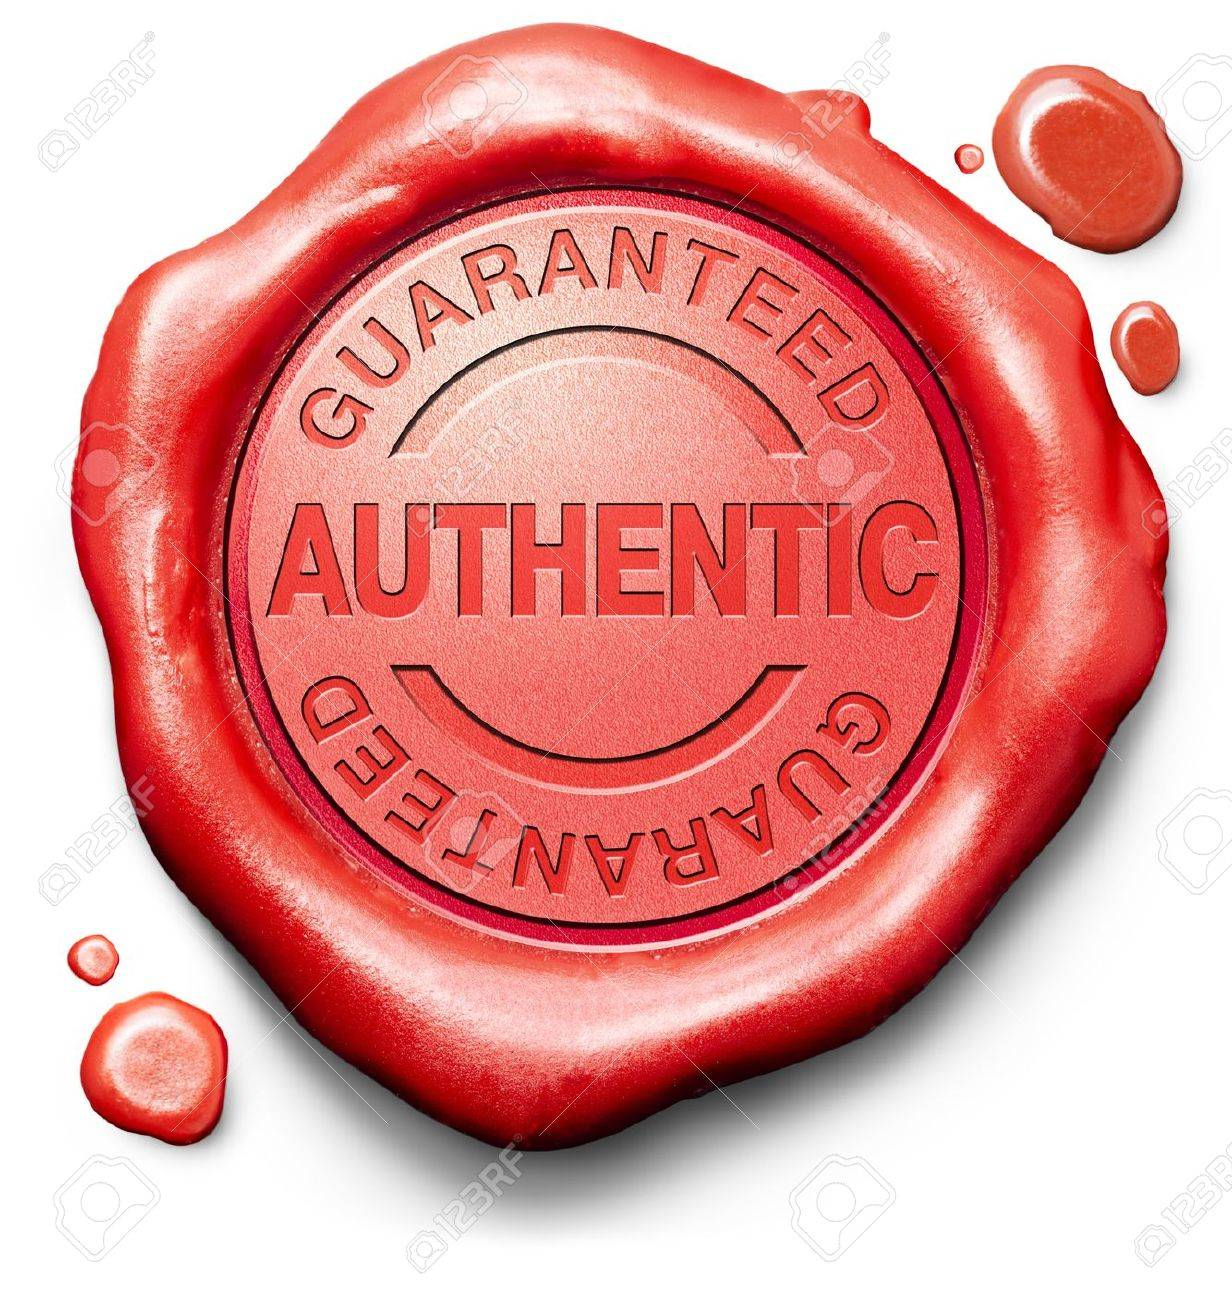 Guaranteed Authentic Stamp Red Wax Seal Quality Label Authenticity ...